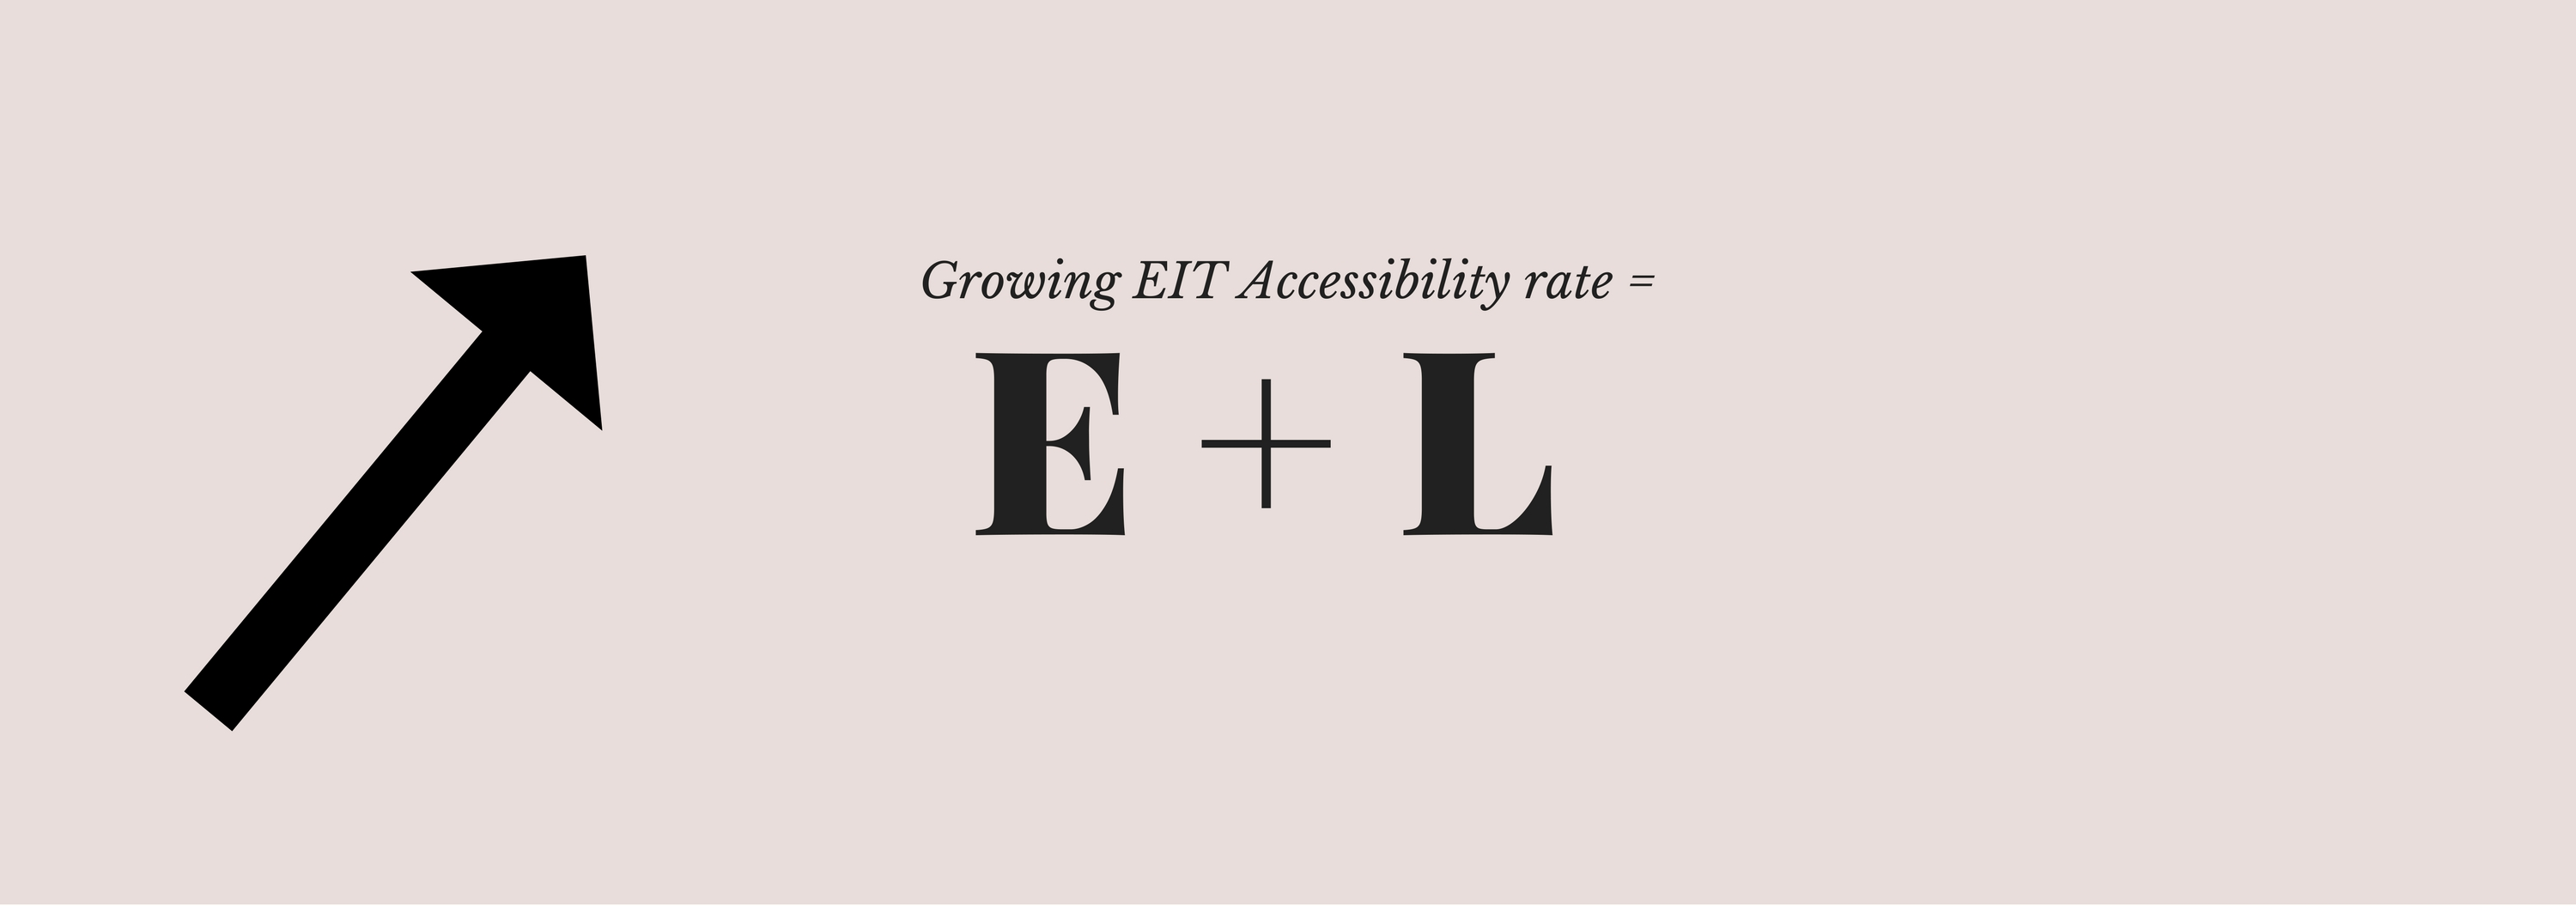 10 Things to Know When Running an EIT Accessibility